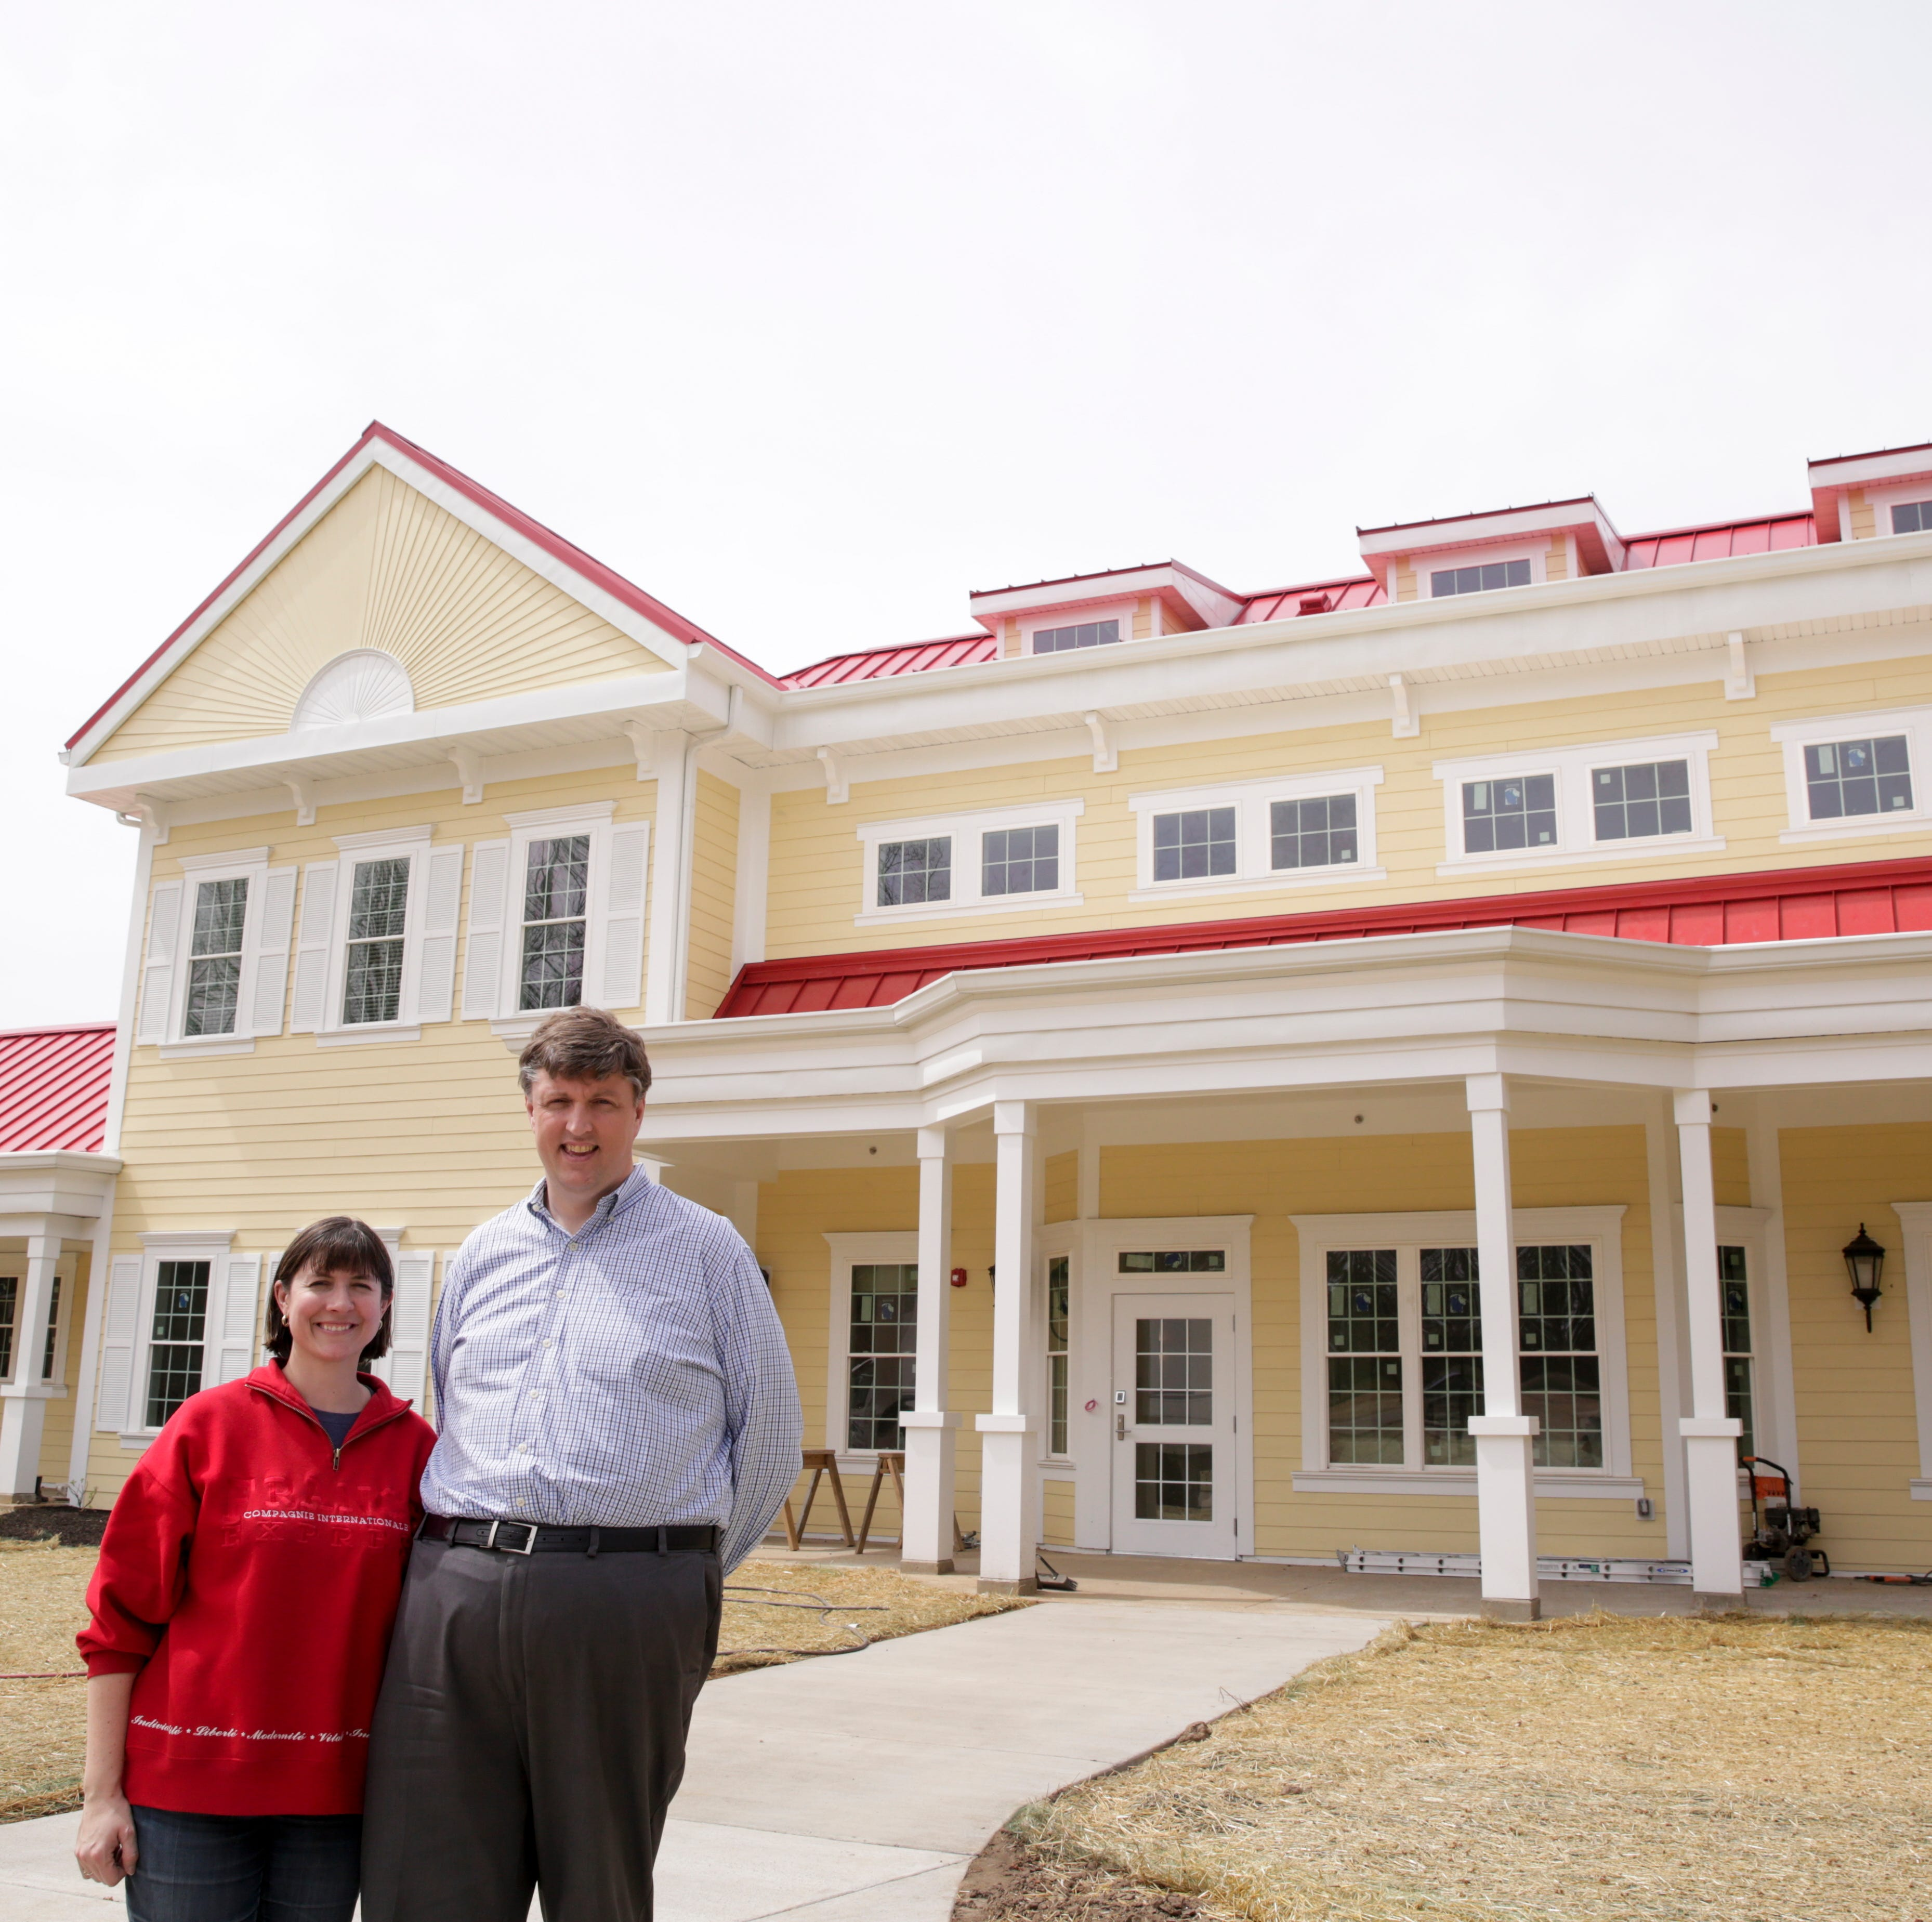 Purdue alumni return to West Lafayette to open 'The Whittaker Inn' bed and breakfast